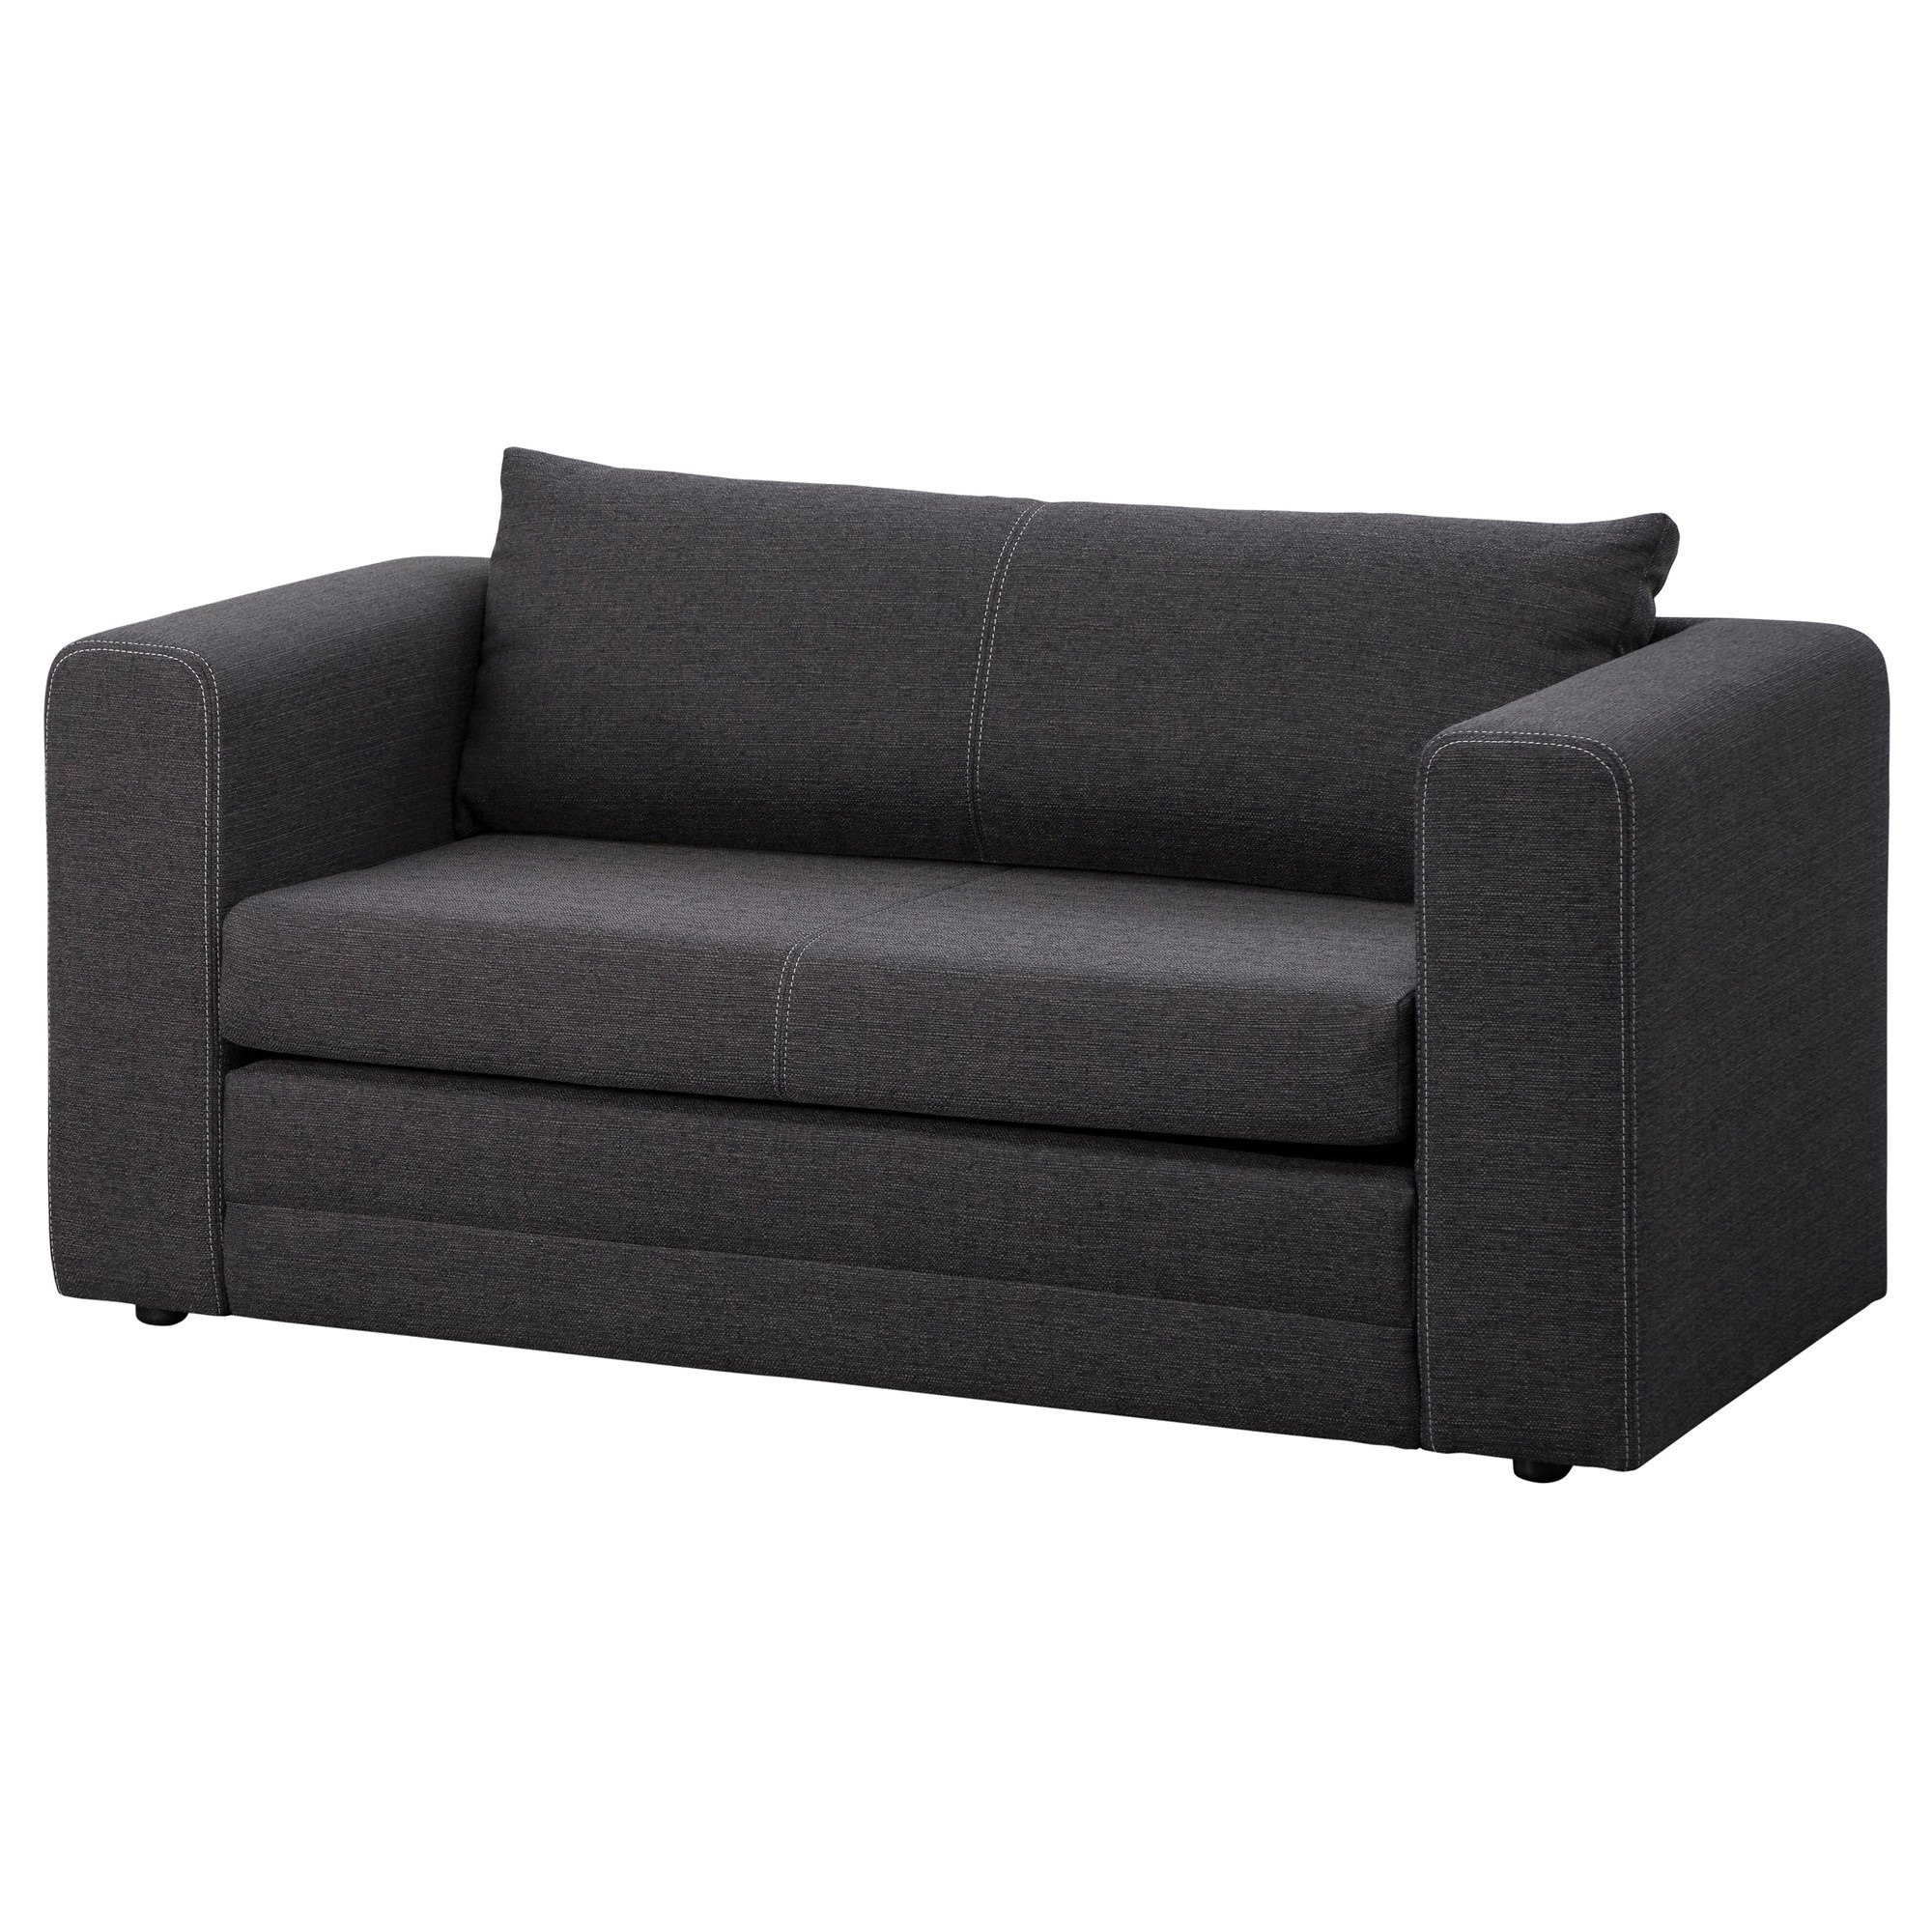 schlafsofa jugendzimmer ikea. Black Bedroom Furniture Sets. Home Design Ideas